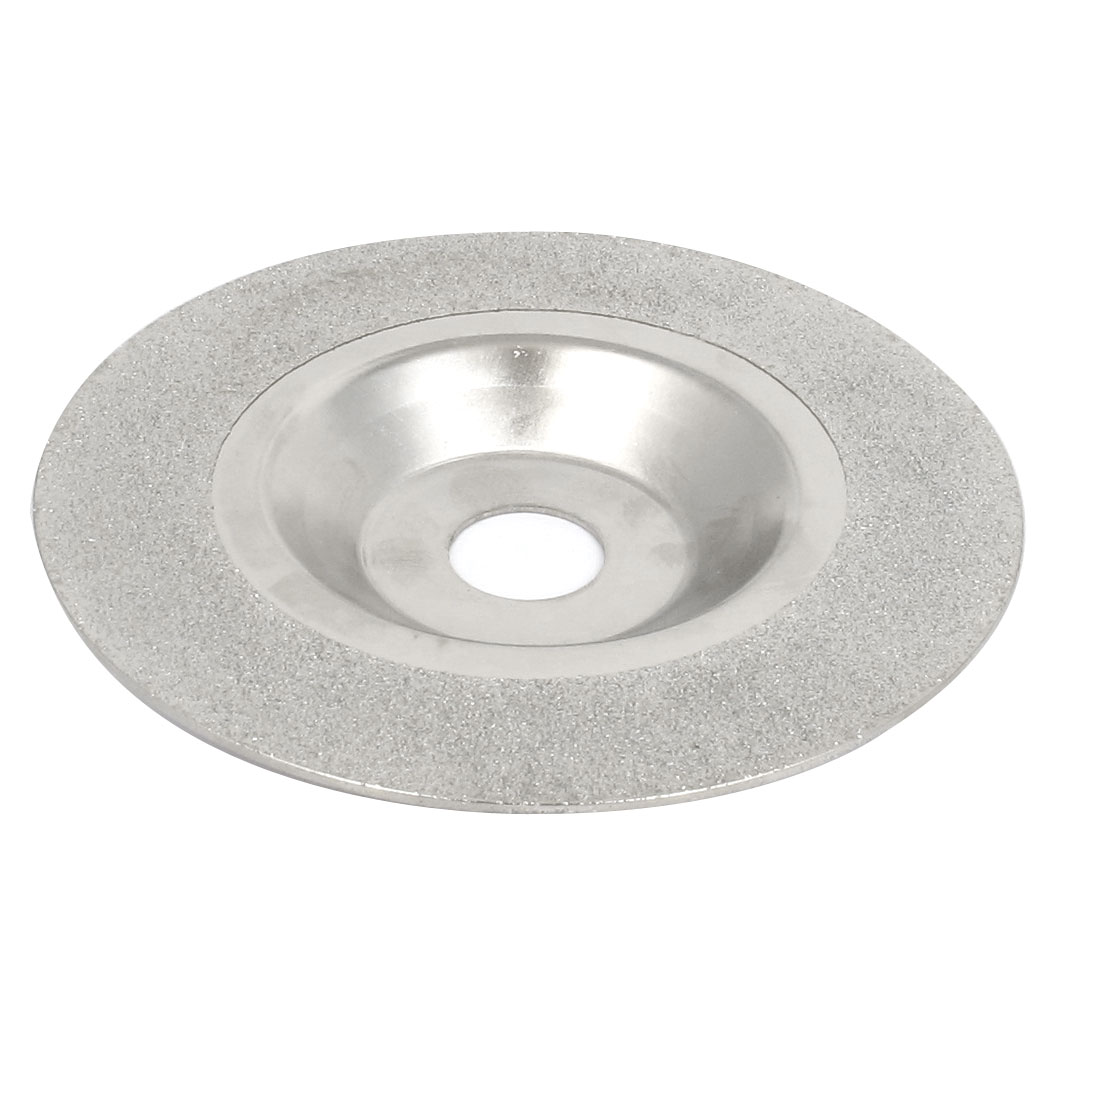 100mmx16mm Marble Glass Diamond Cup Concave Grinding Disc Wheel Silver Tone